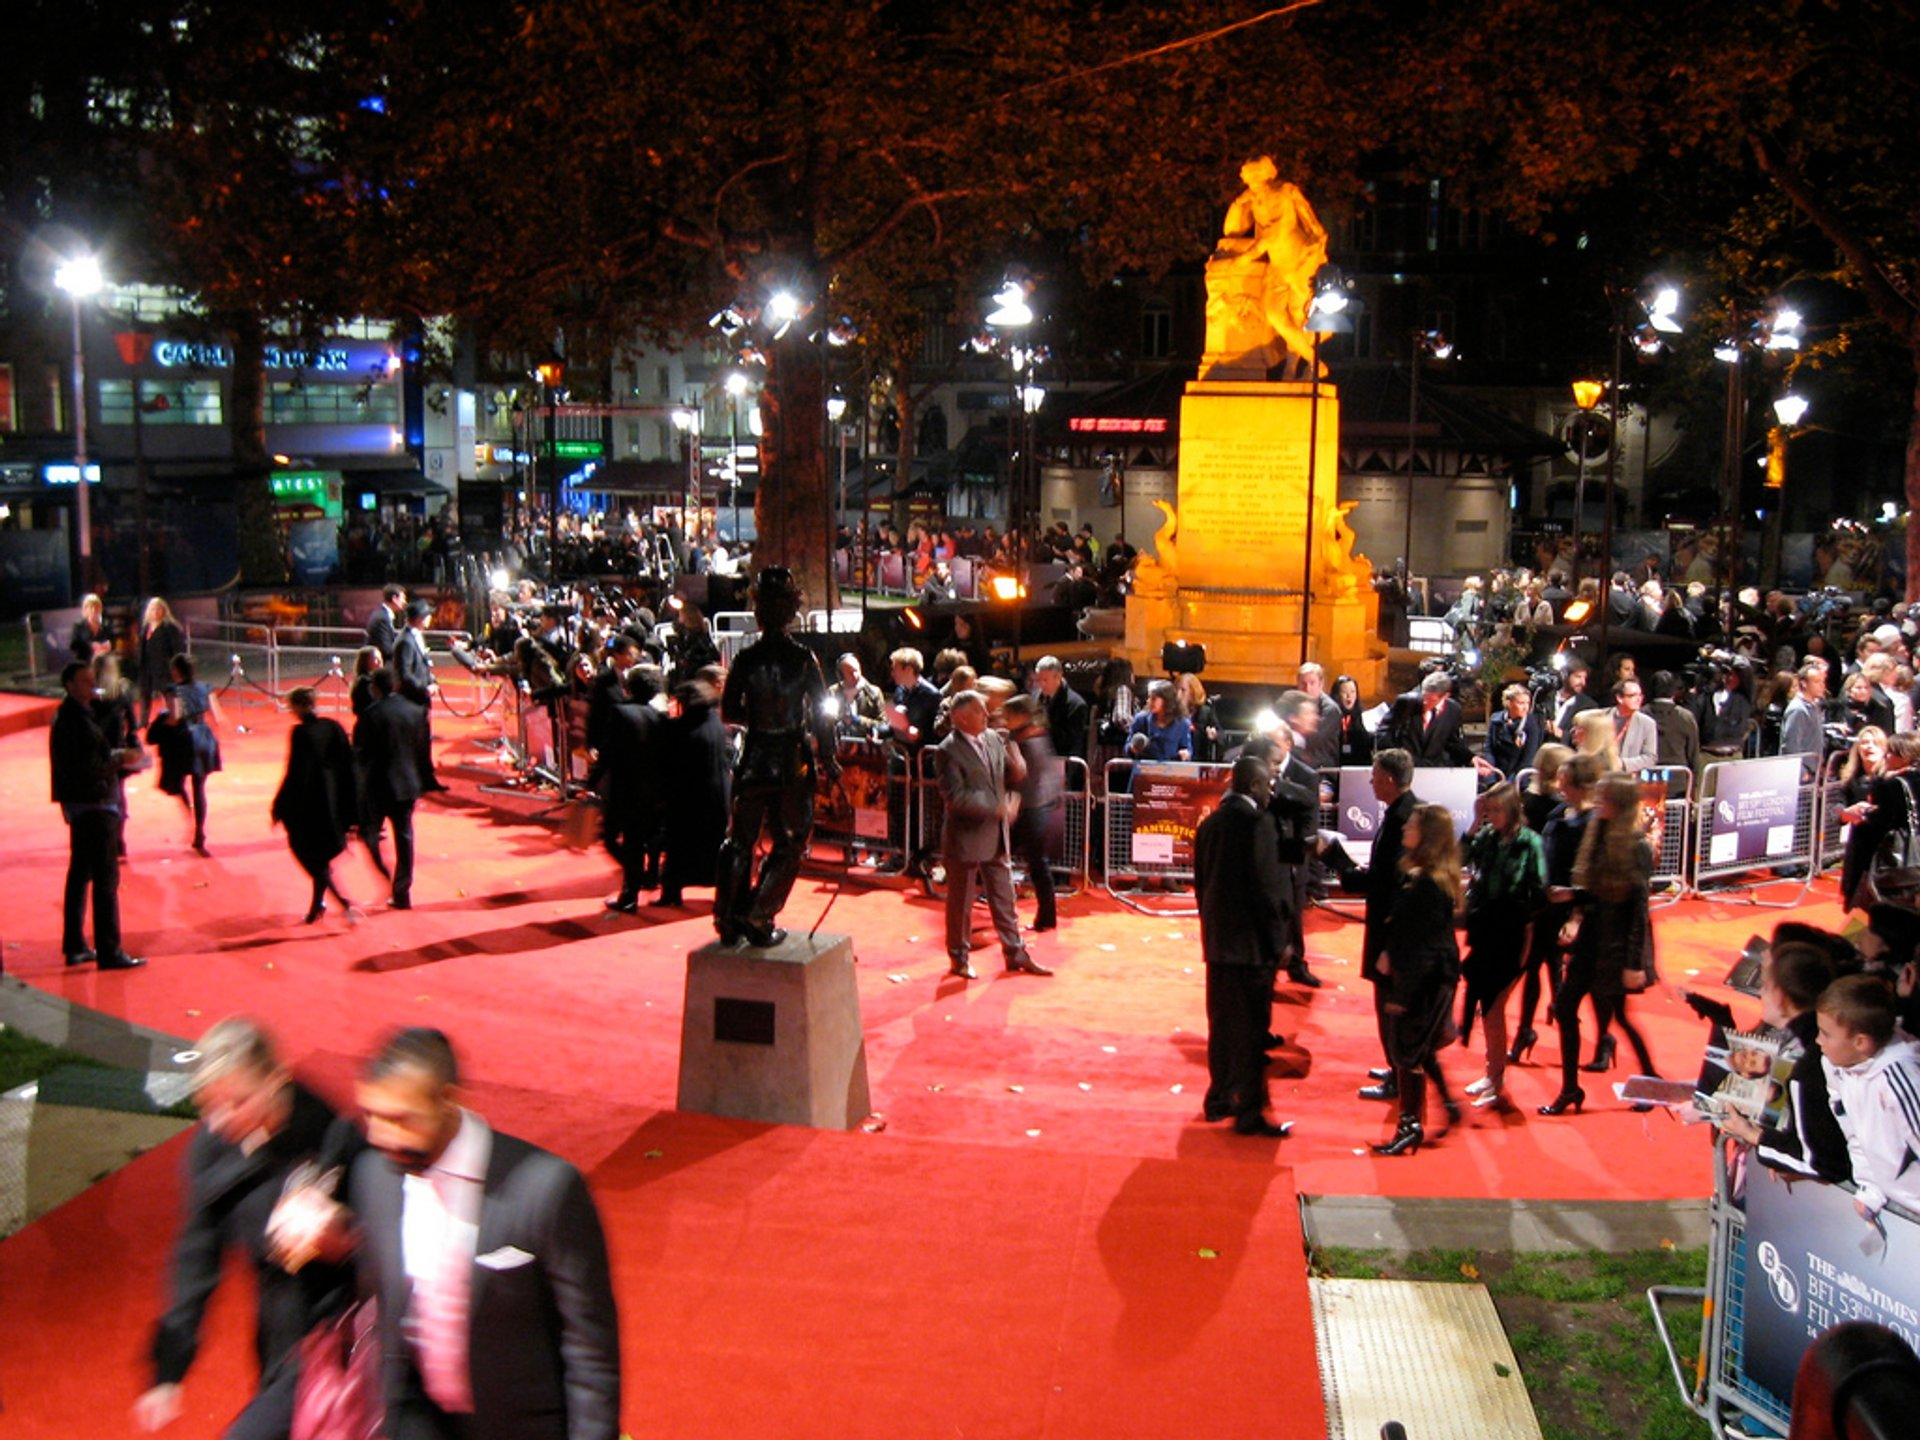 Best time to see BFI London Film Festival in London 2020